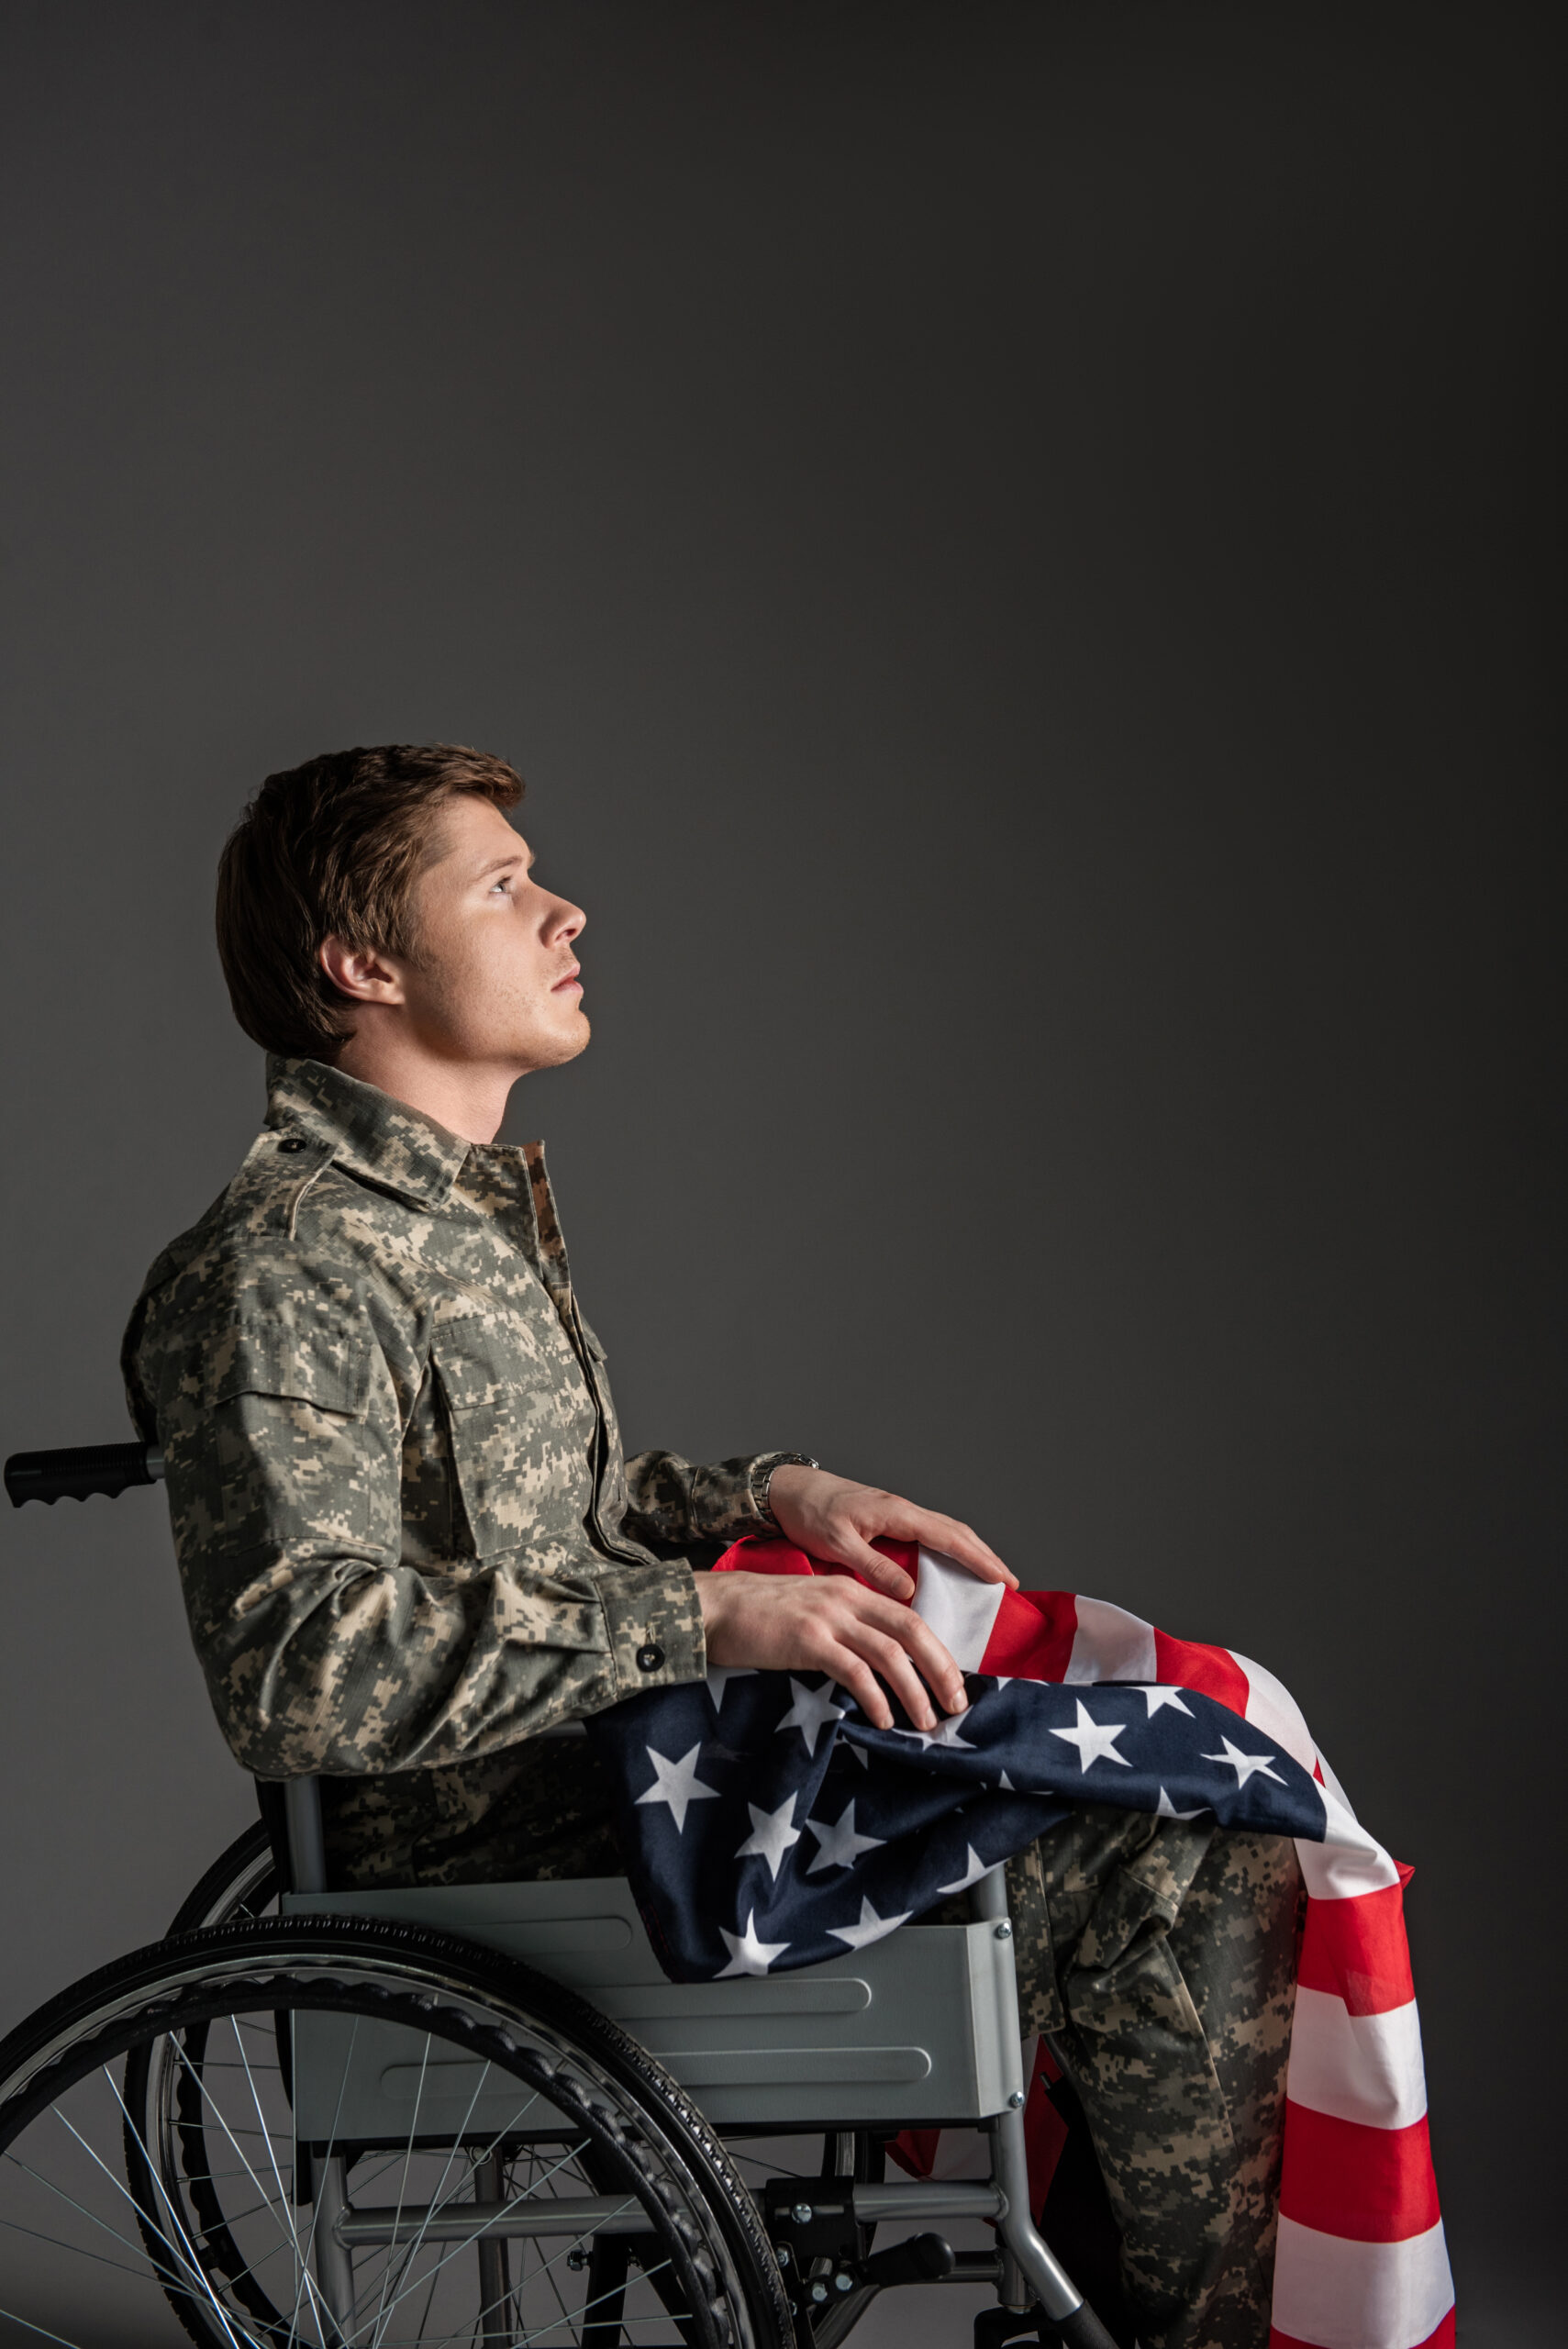 American Military Veteran Sitting in Wheelchair, Wearing Camouflage and Holding United States Flag